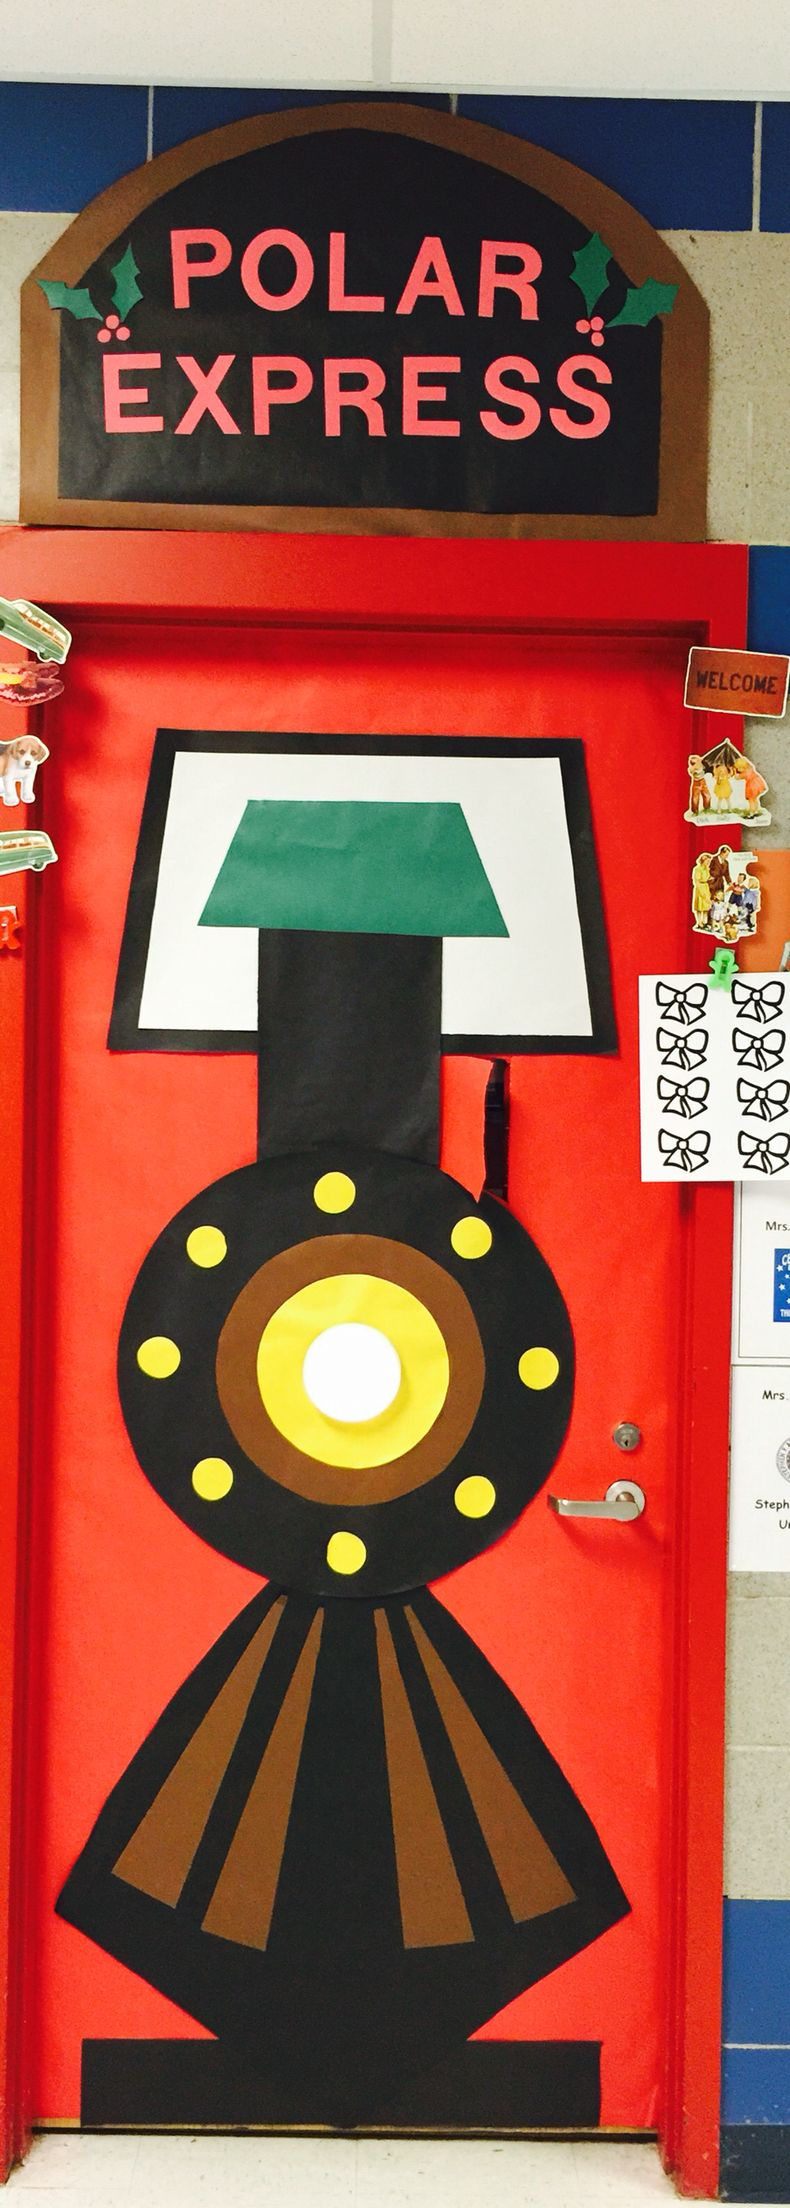 Polar express Christmas door & Polar express Christmas door | Class room ideas | Pinterest ...